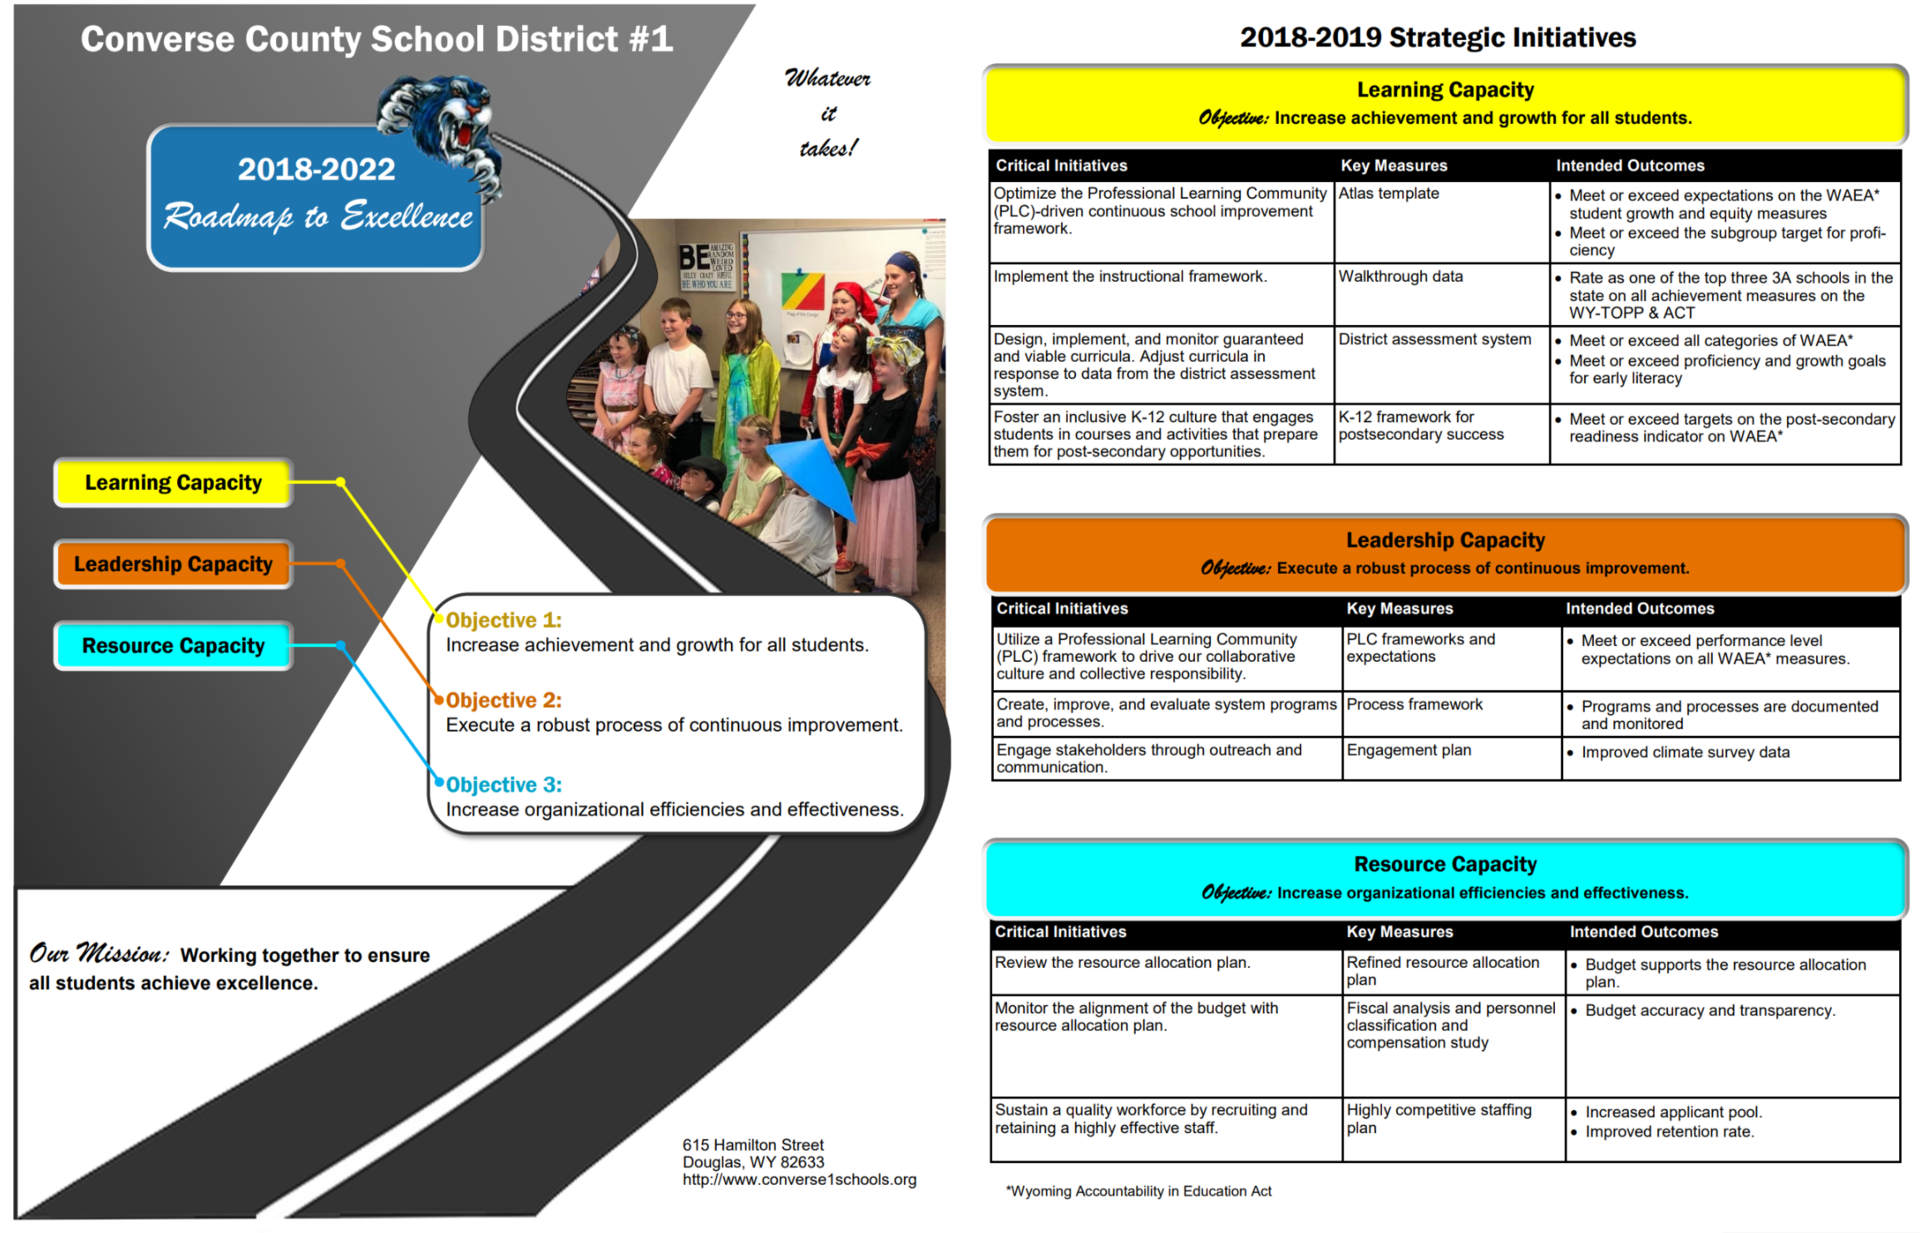 CCSD 1 Roadmap to Excellence